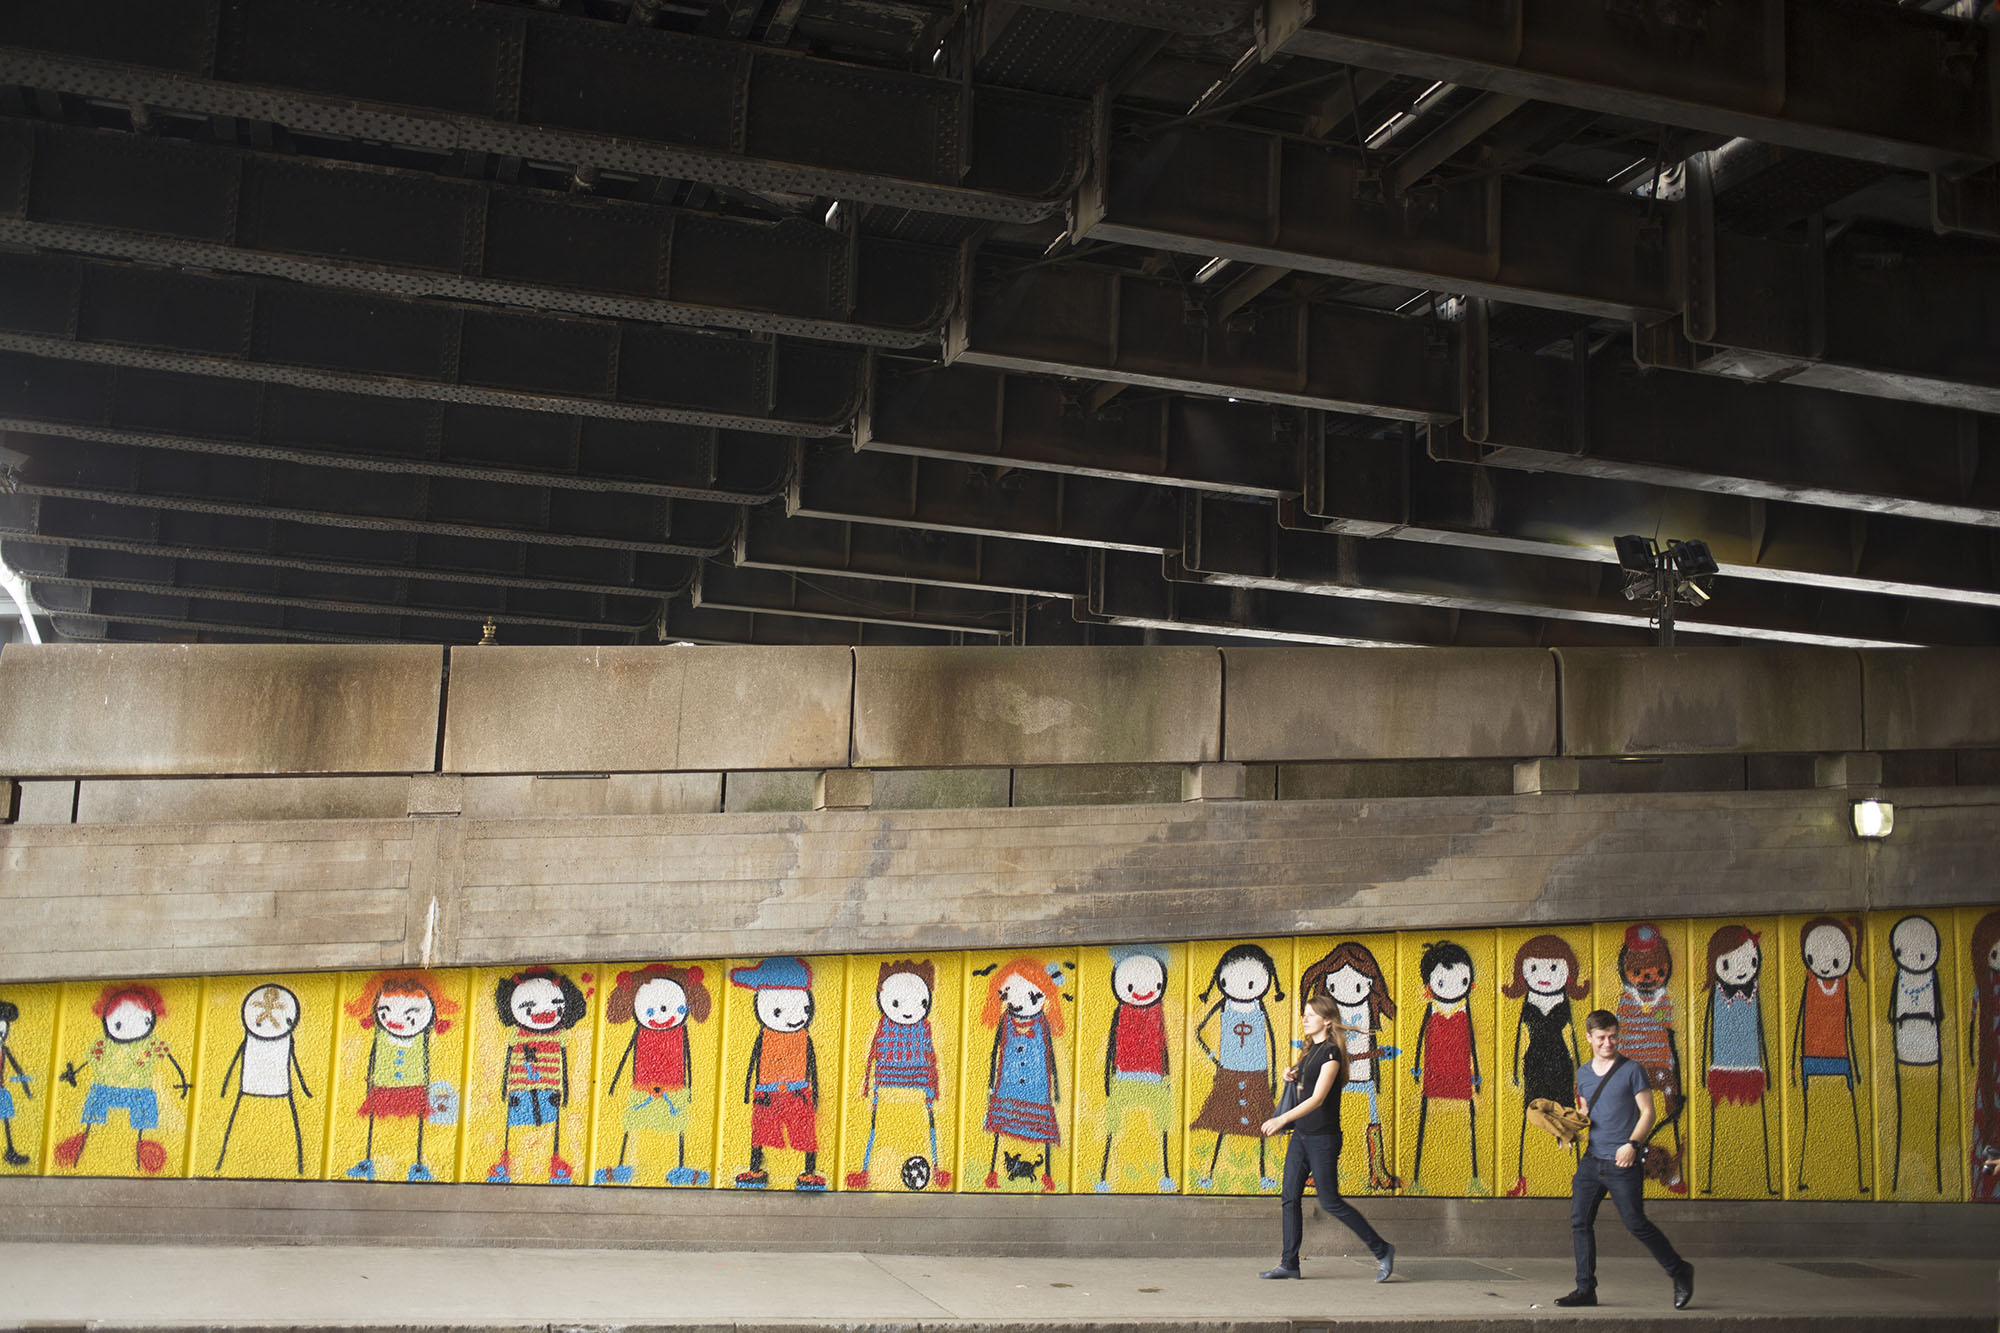 Street art graffiti under Hungerford Bridge showing characters growing up by artist Stik.